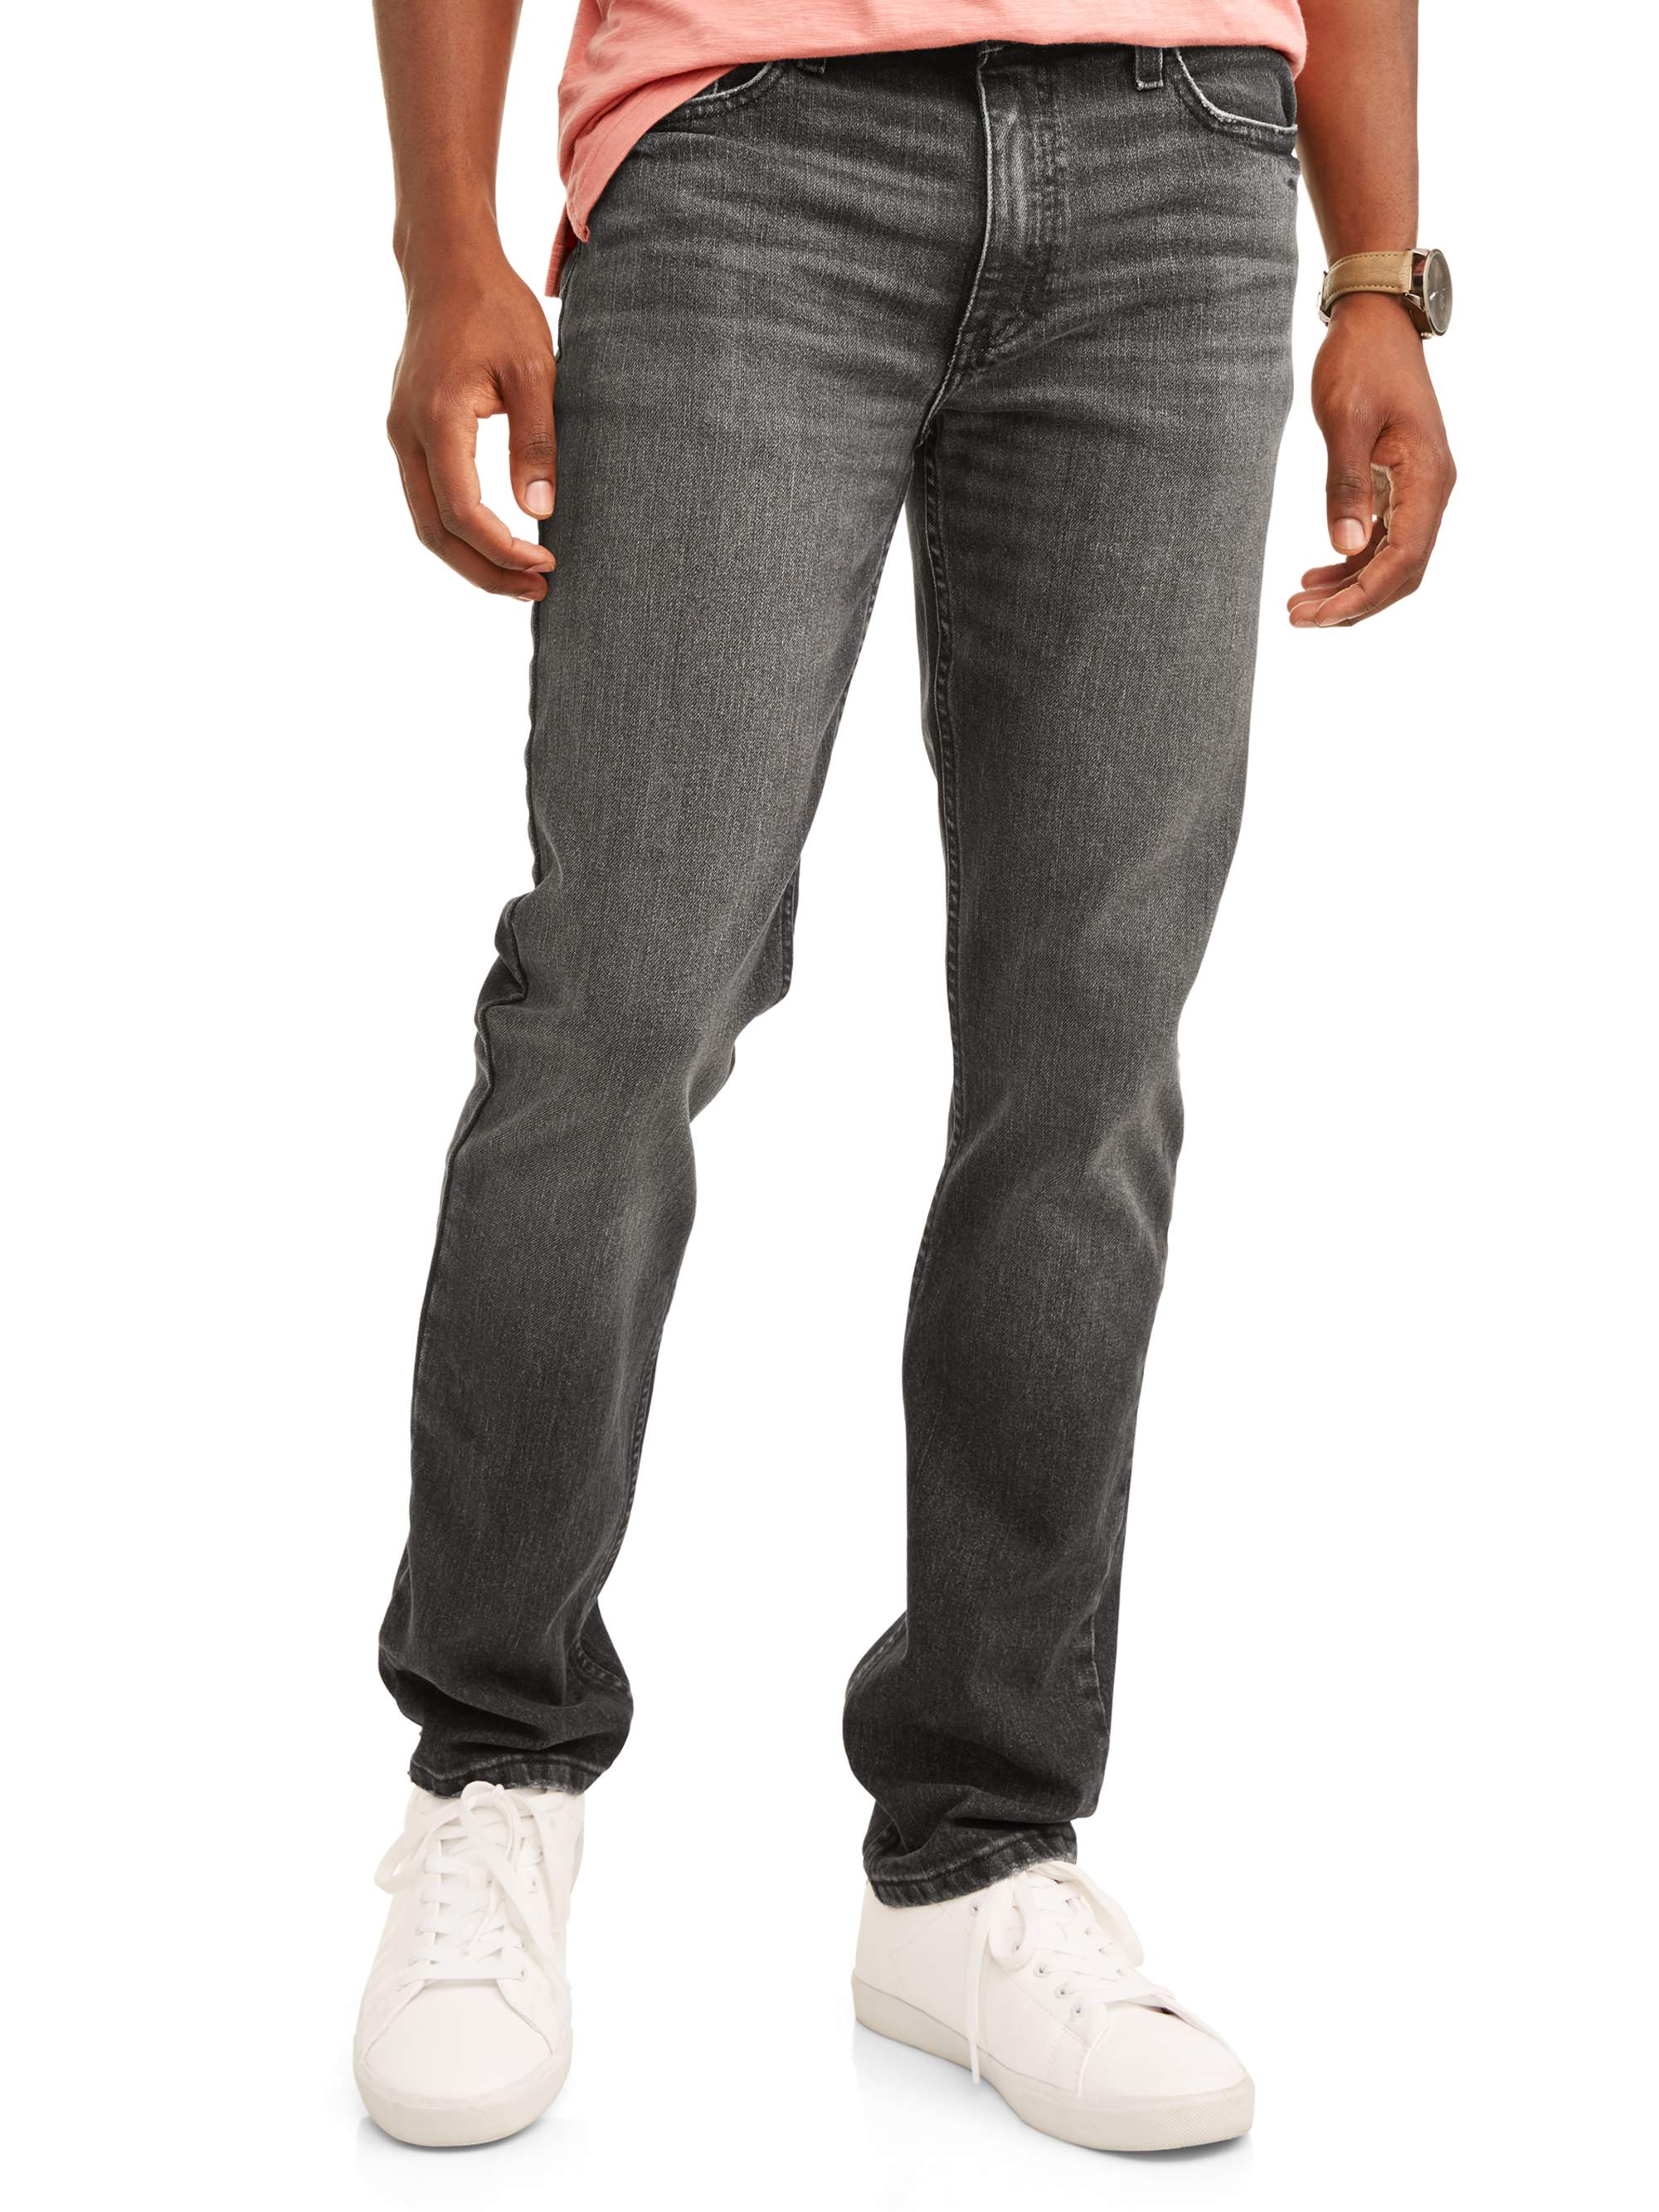 30a8c0a0ee George - George Men's Slim Straight Fit Jean - Walmart.com